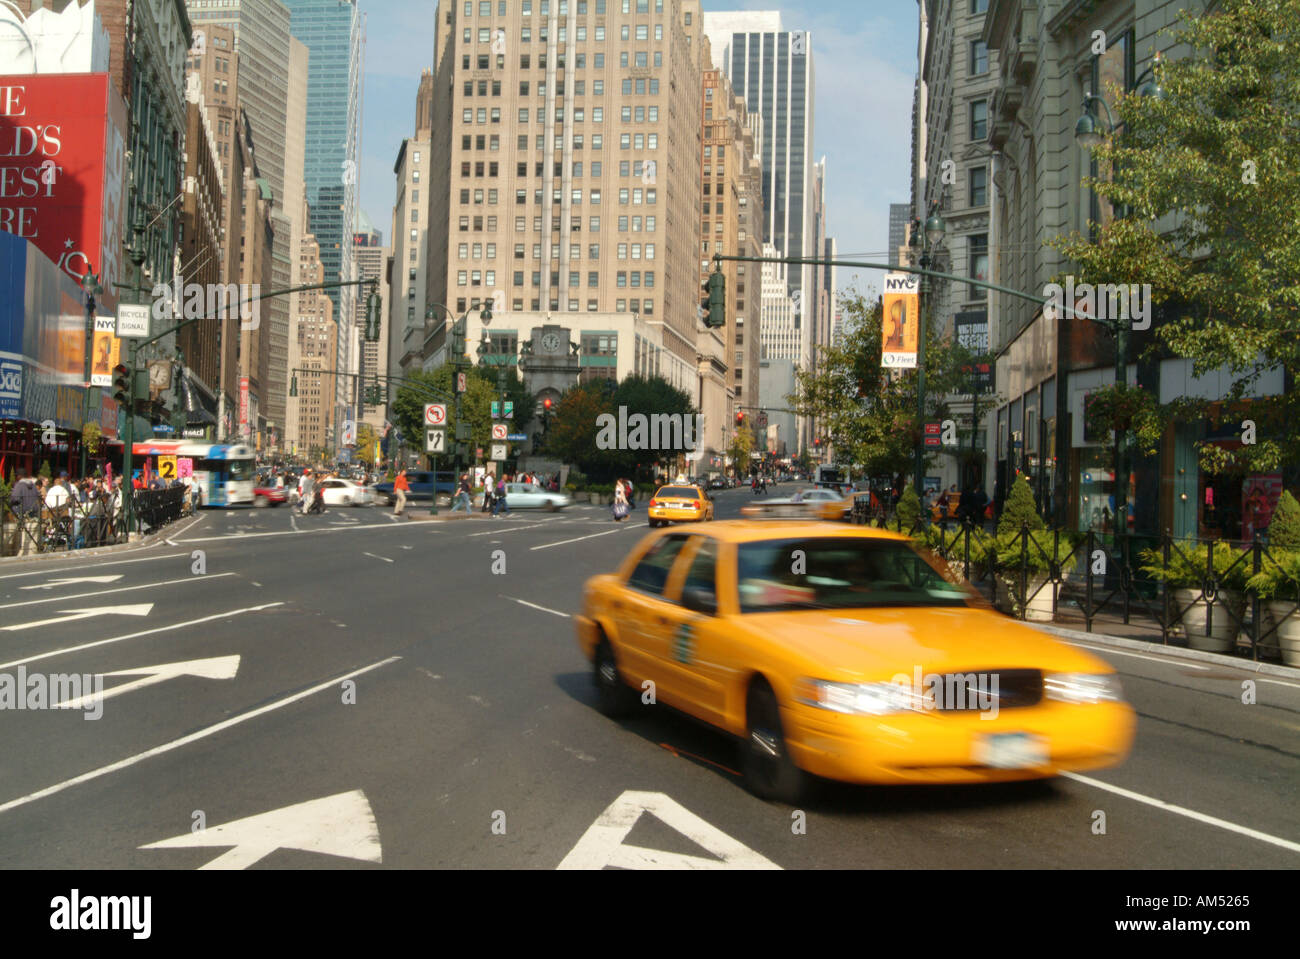 Taxi cab speeding down Broadway in Manhattan, NY - Stock Image